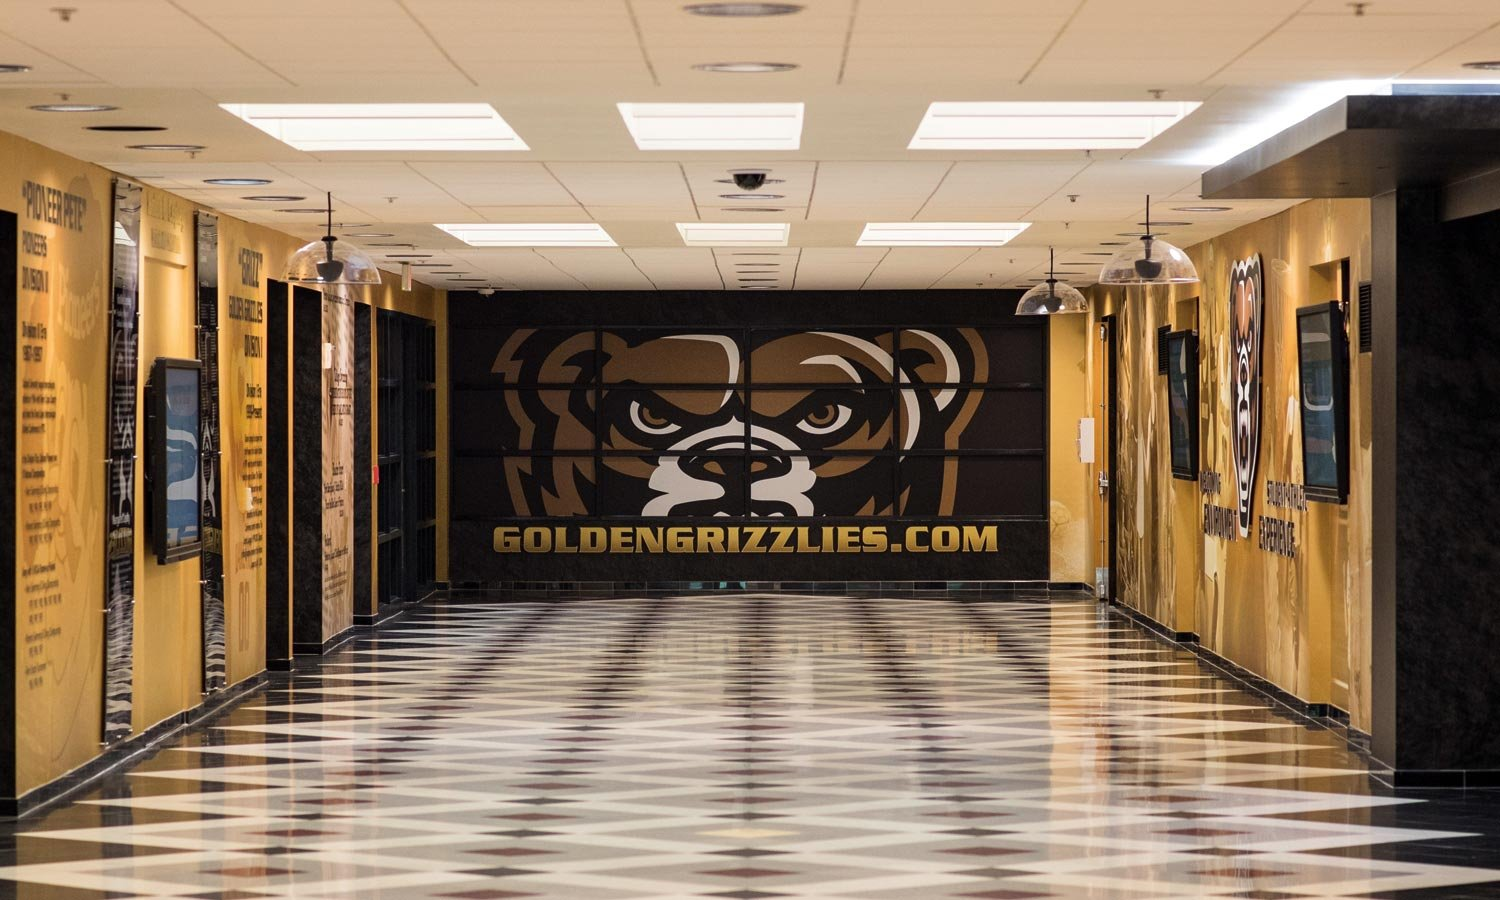 Featured image for Oh-Rena! TVs, graphics greet Grizzly fans